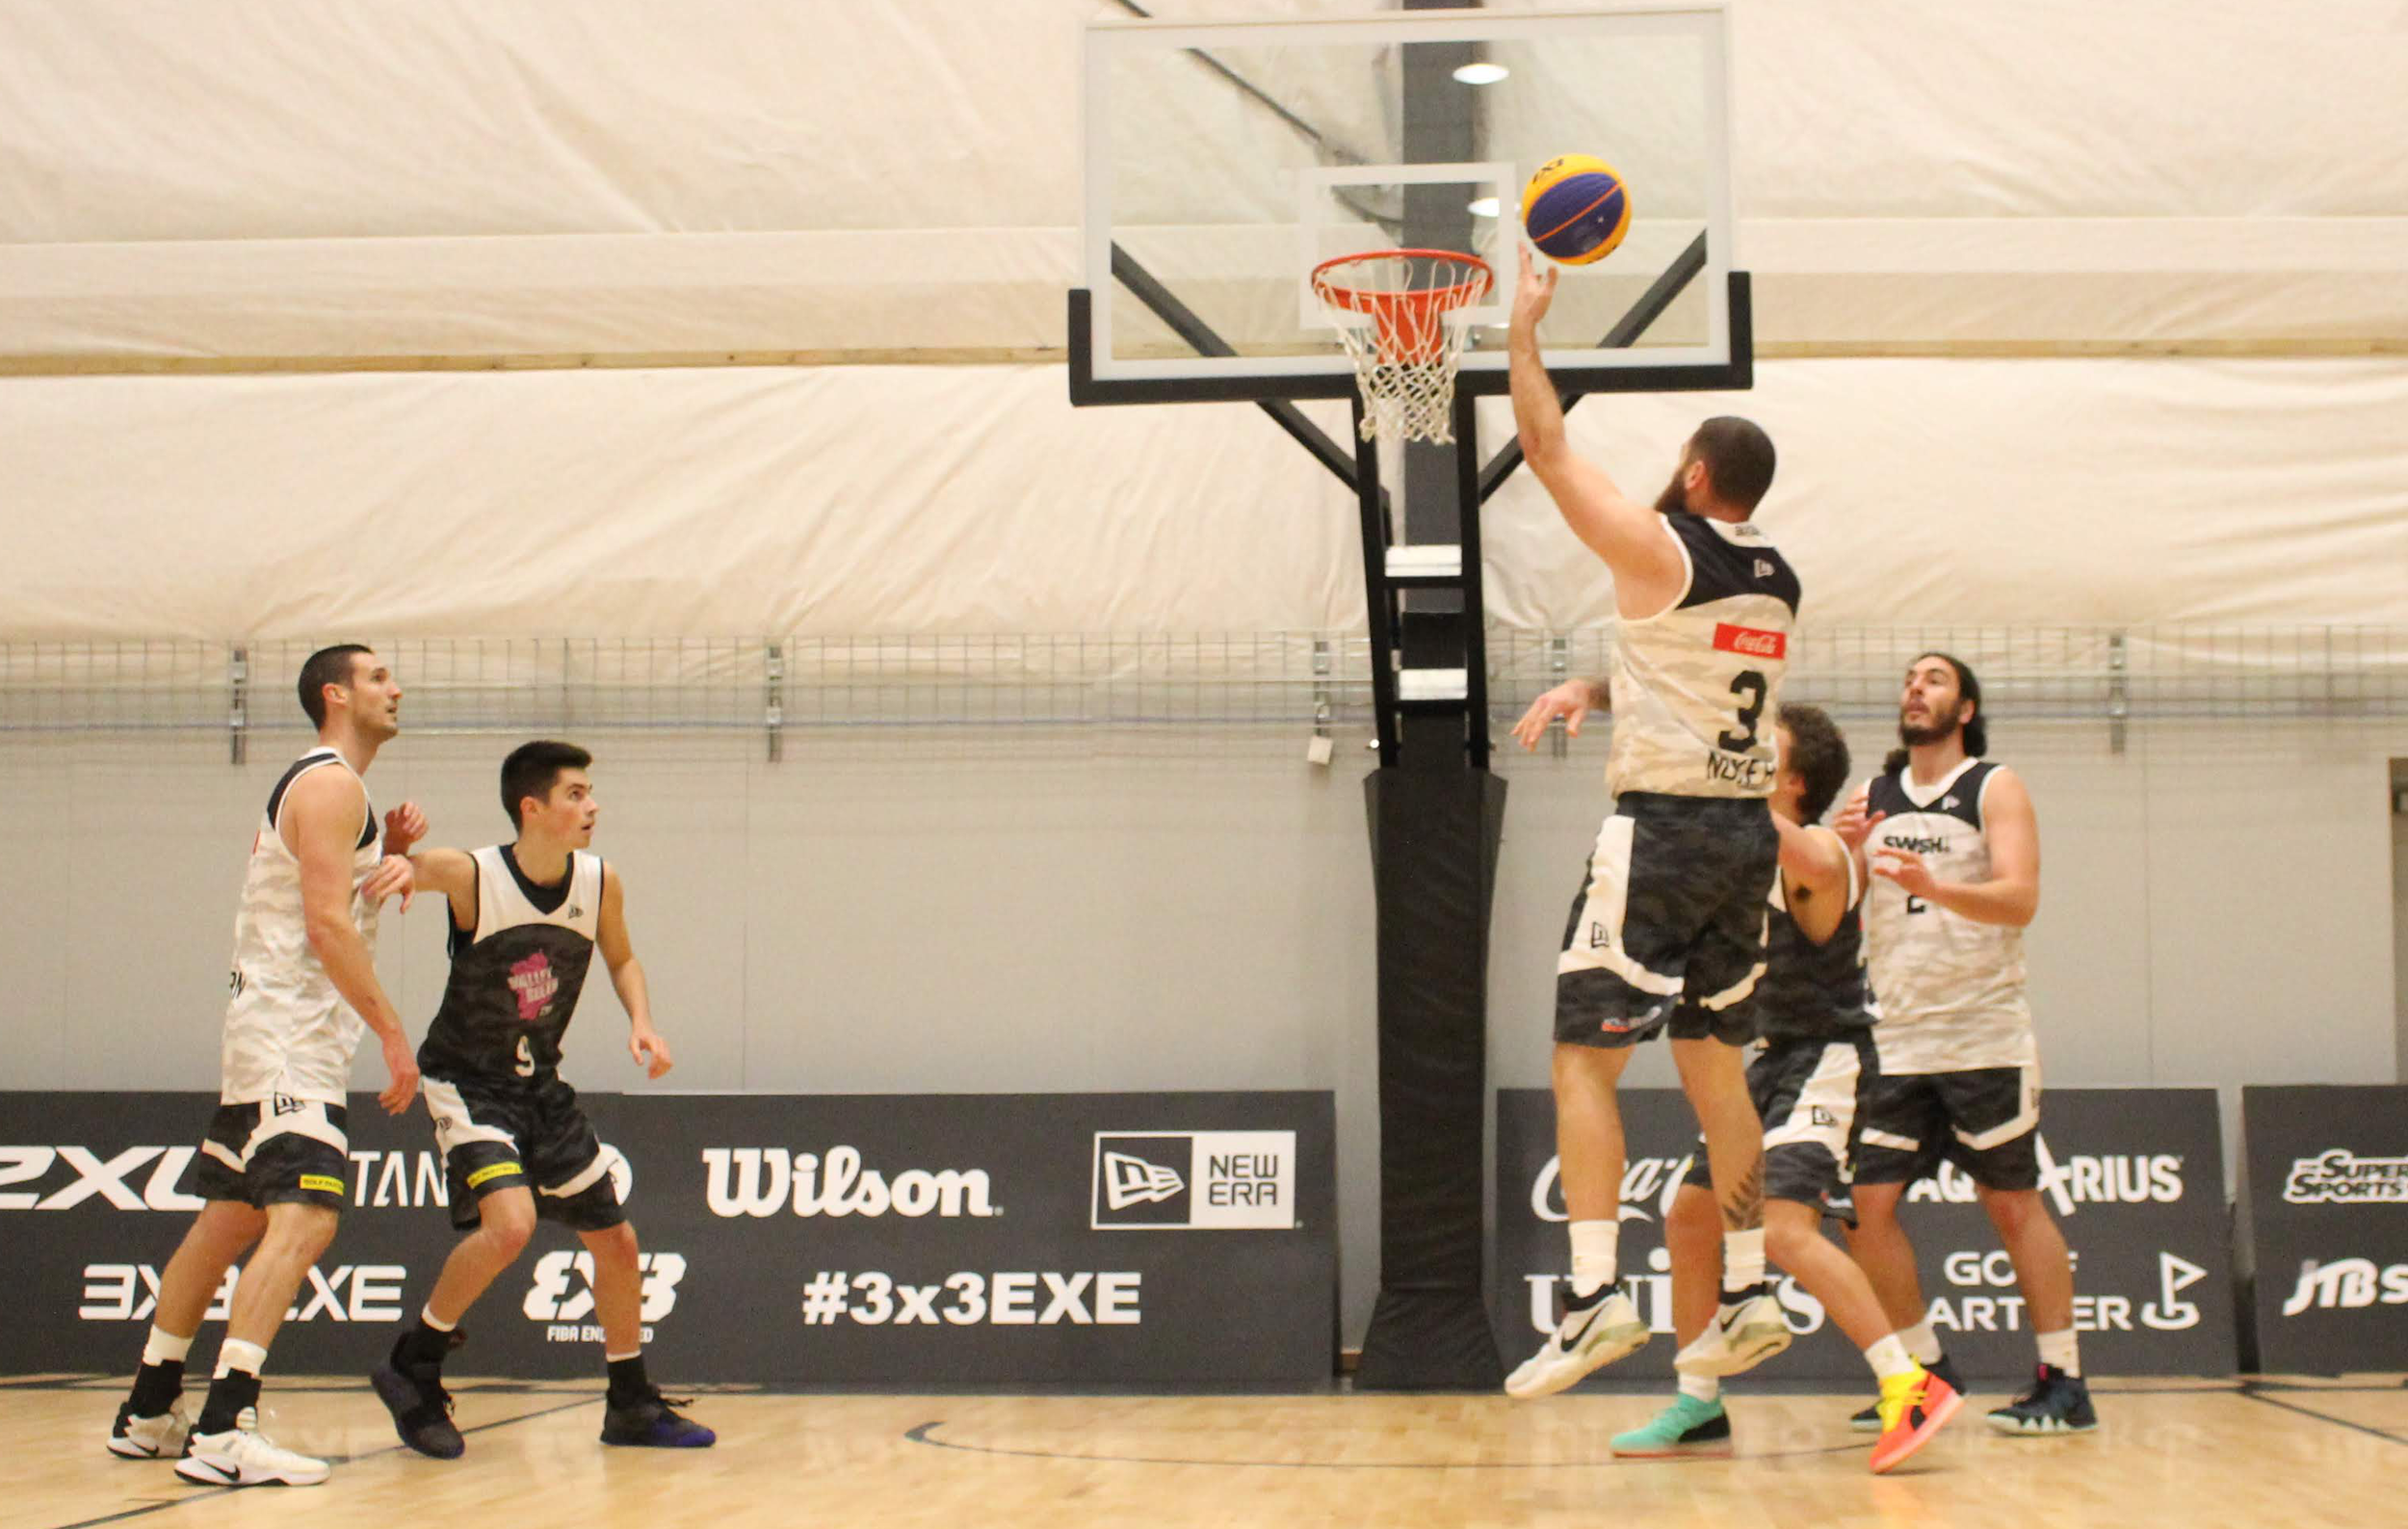 Adult Skills Workshop - Develop your fundamental basketball skills - learn from NZ's best coaches